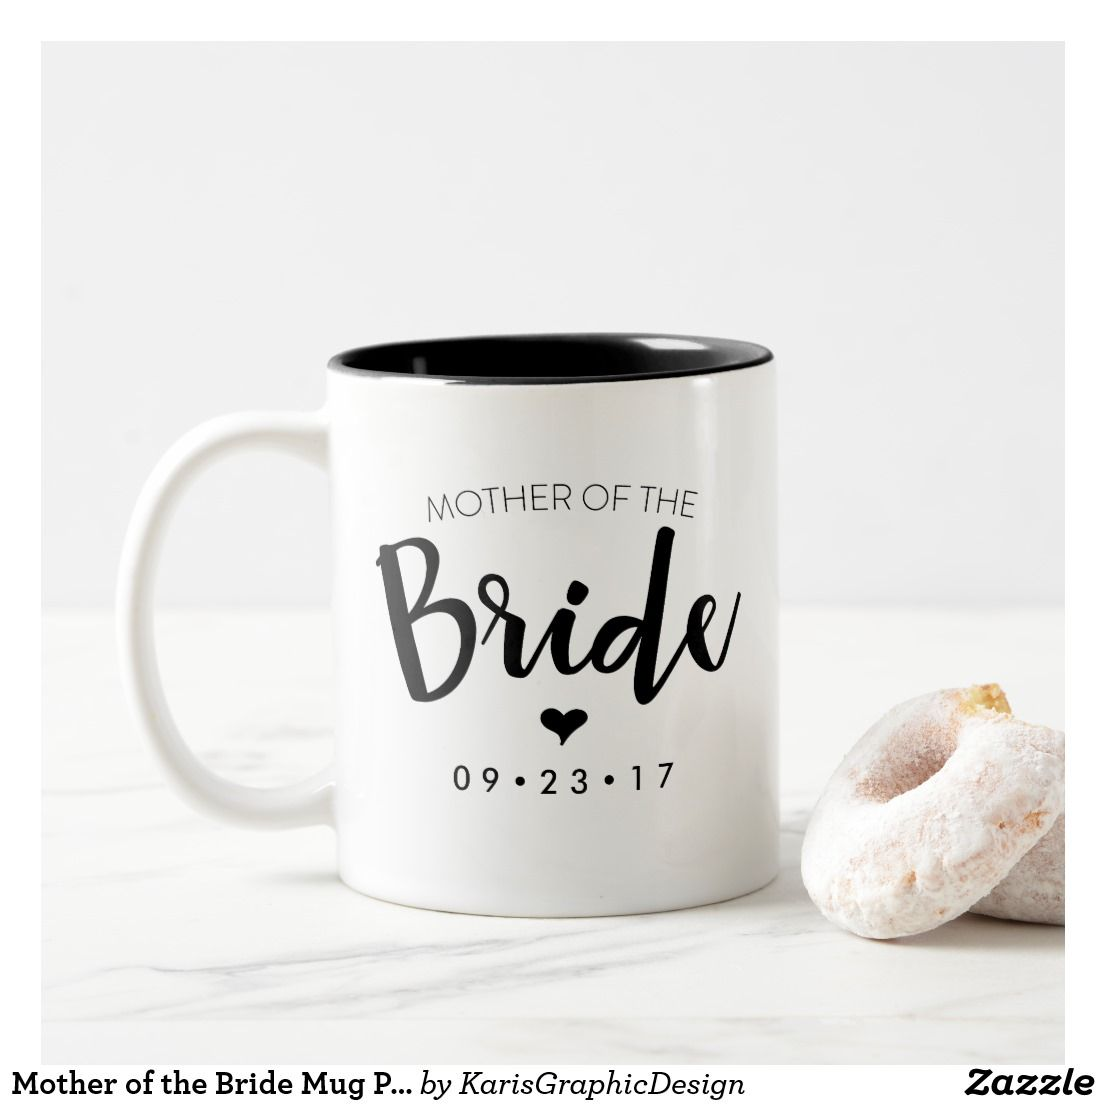 Mother Of The Groom Set Of Matching Mugs Wedding Gift 023 Mother Of The Bride